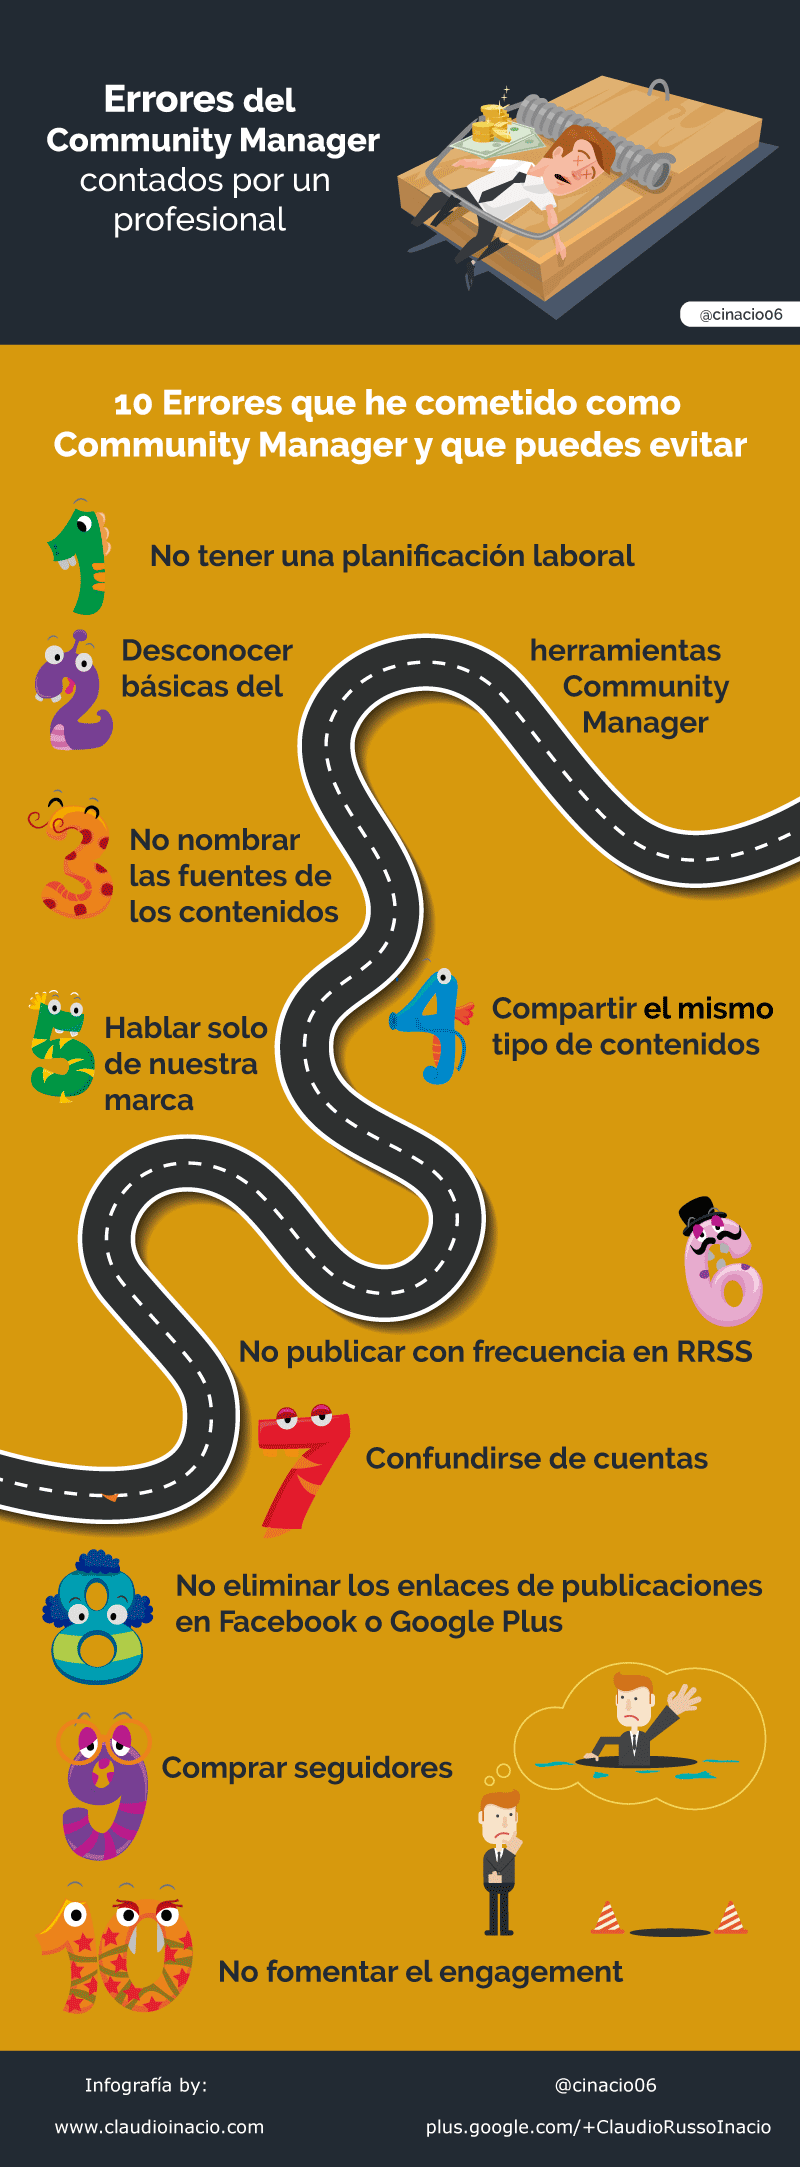 infografia errores del community manager